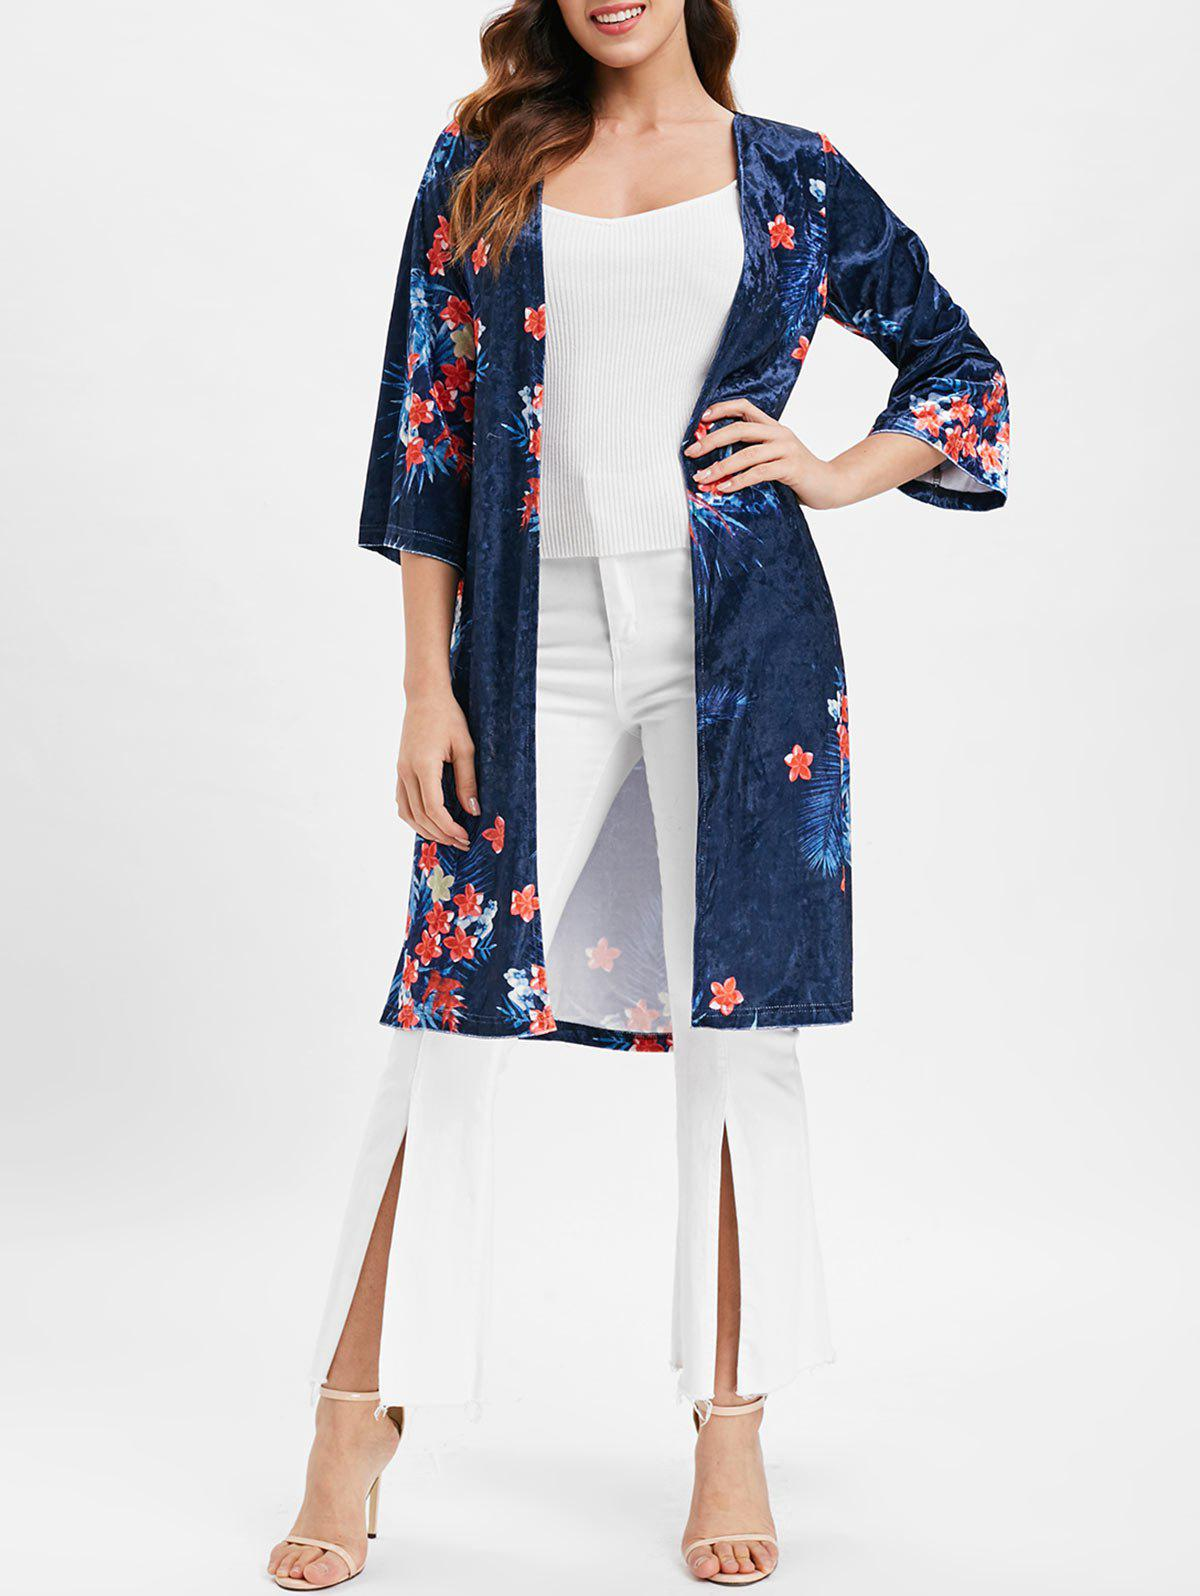 Floral Longline Velvet Coat with Open Front - NAVY BLUE M